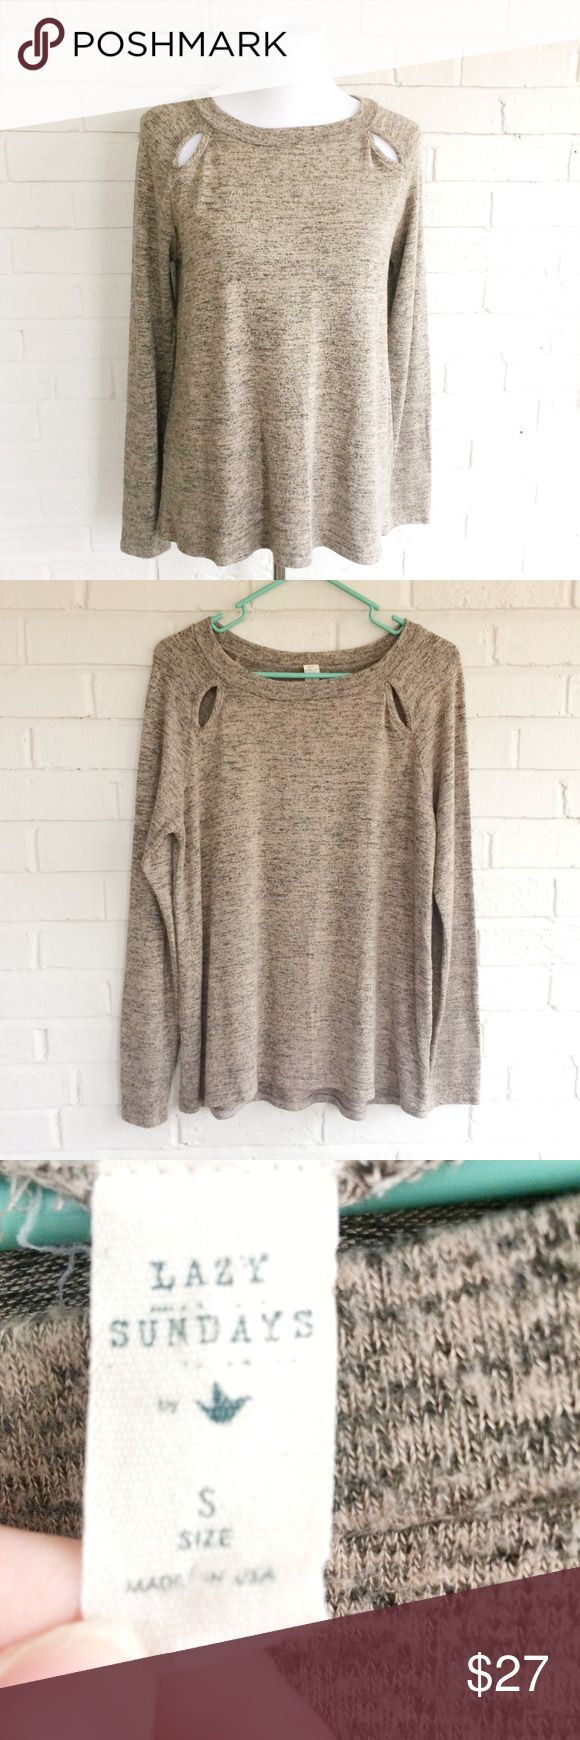 Lazy Sundays by Paper Crane stretchy sweatshirt Make an offer! No trades. Bundle and save - I'm a fast shipper! Paper Crane Tops Sweatshirts & Hoodies